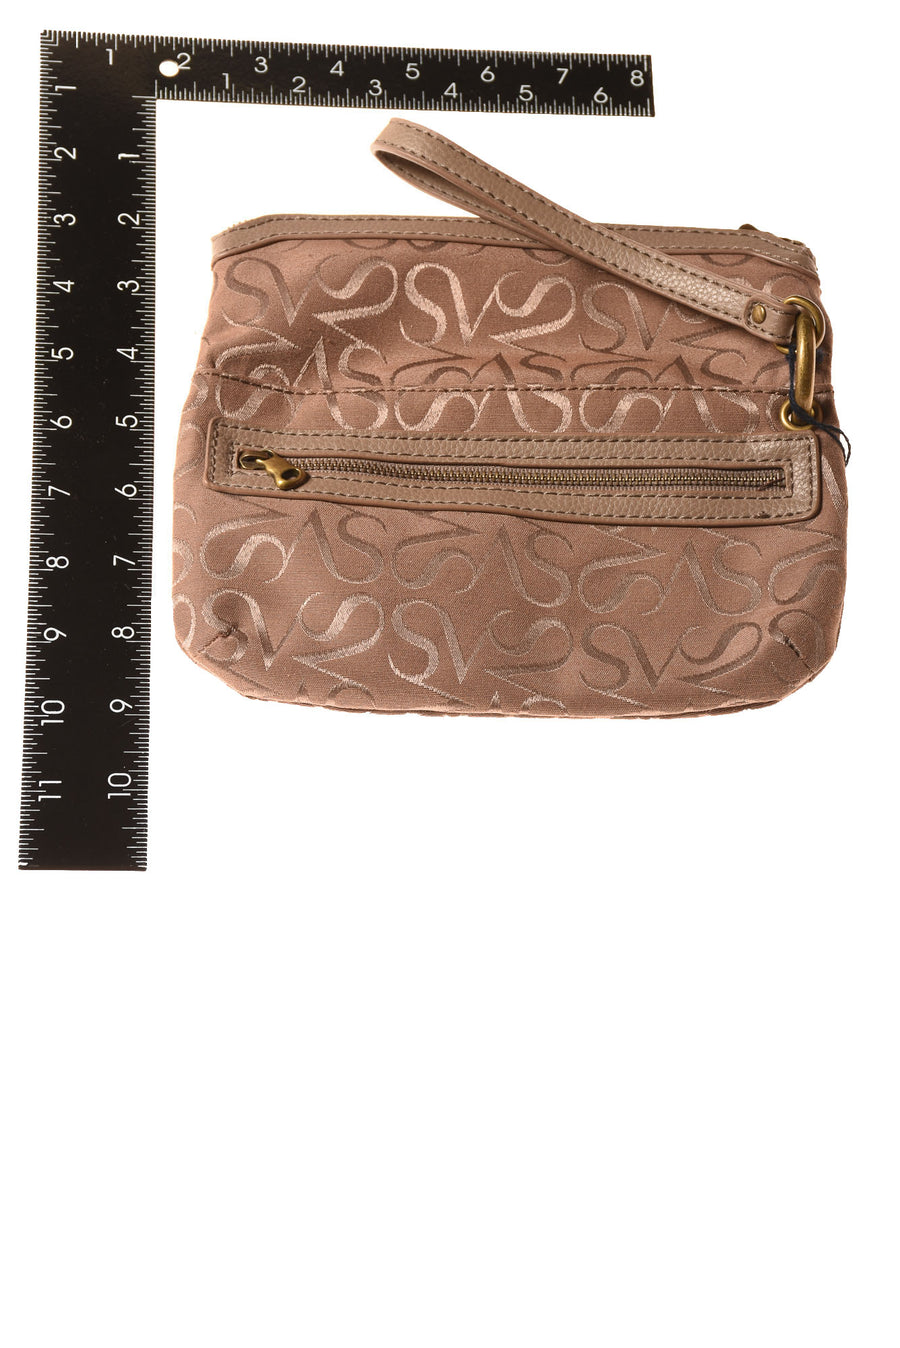 NEW Simply VeraWang Women's Handbag N/A Brown Suede / Print